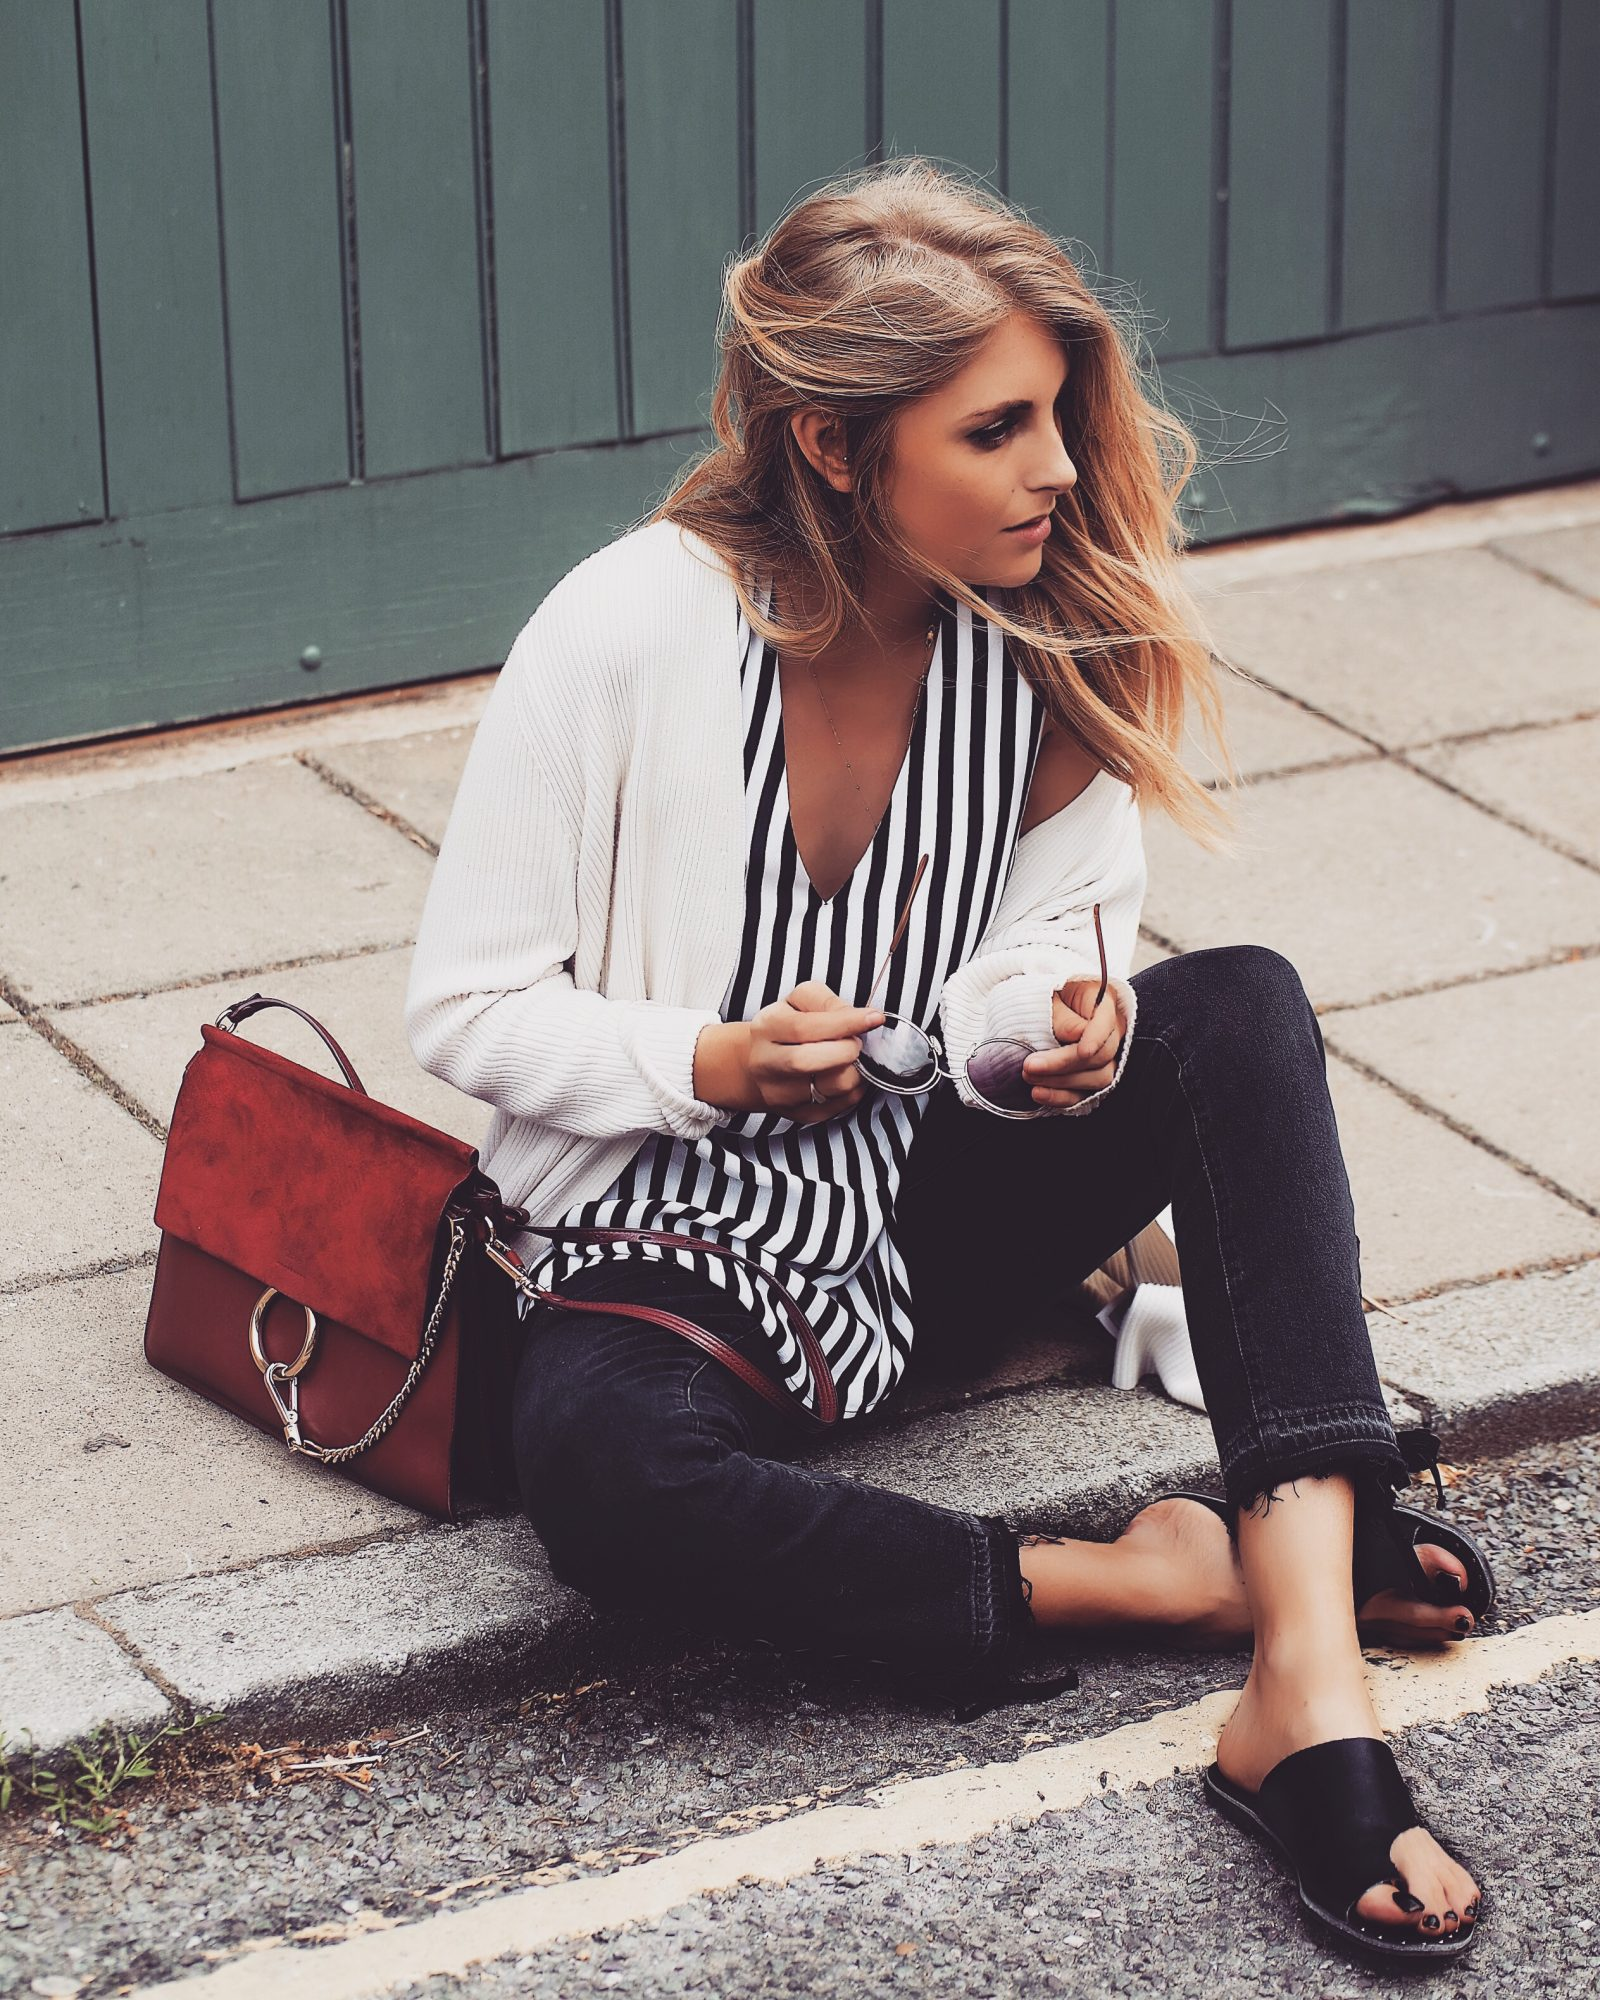 Monochrome Summer Outfit - Street Style Fashion Blogger